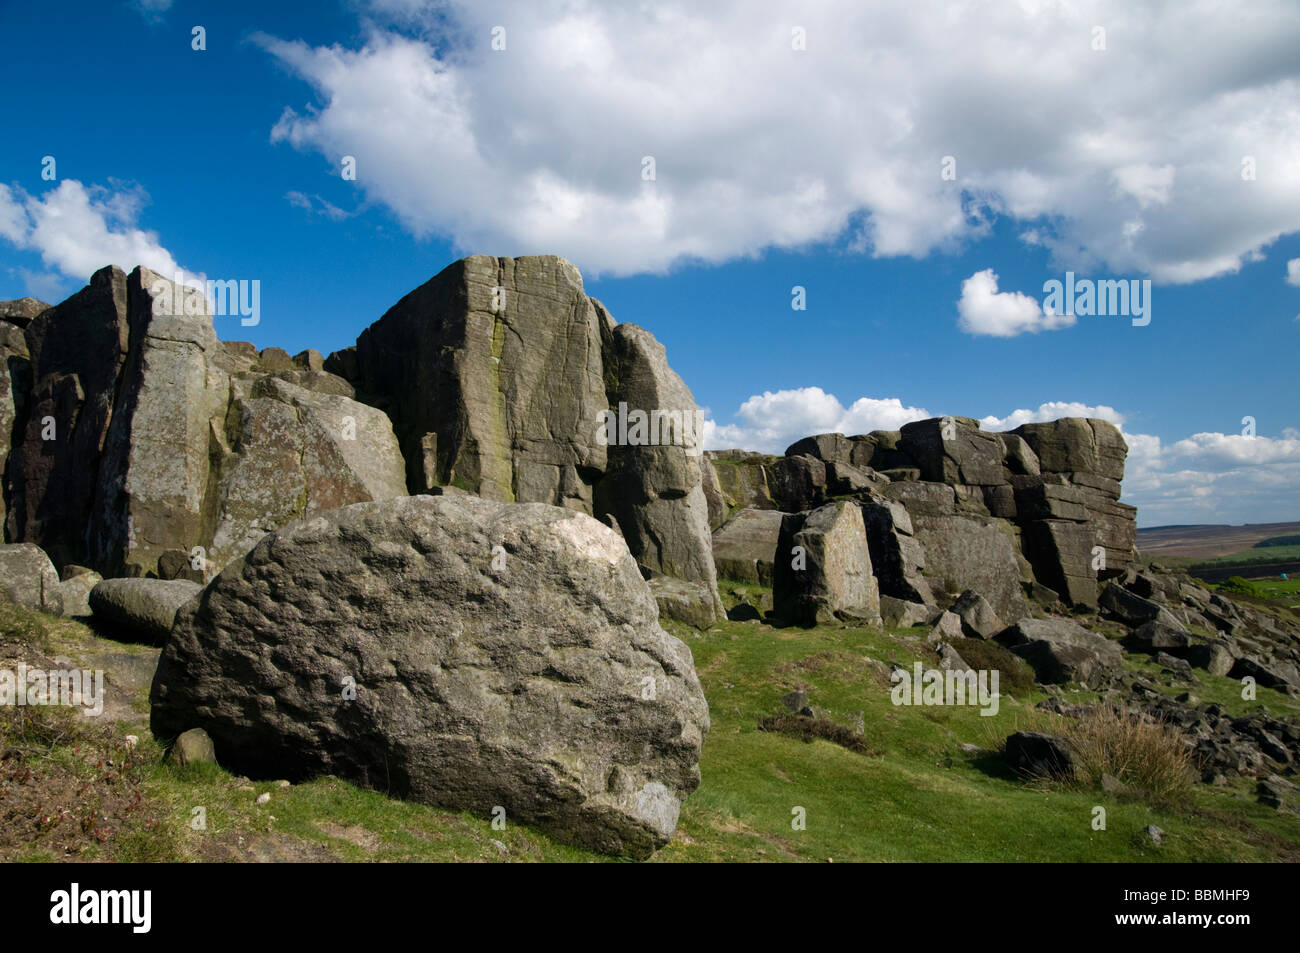 Curbar Edge  in the Peak District National Park Derbyshire England UK - Stock Image